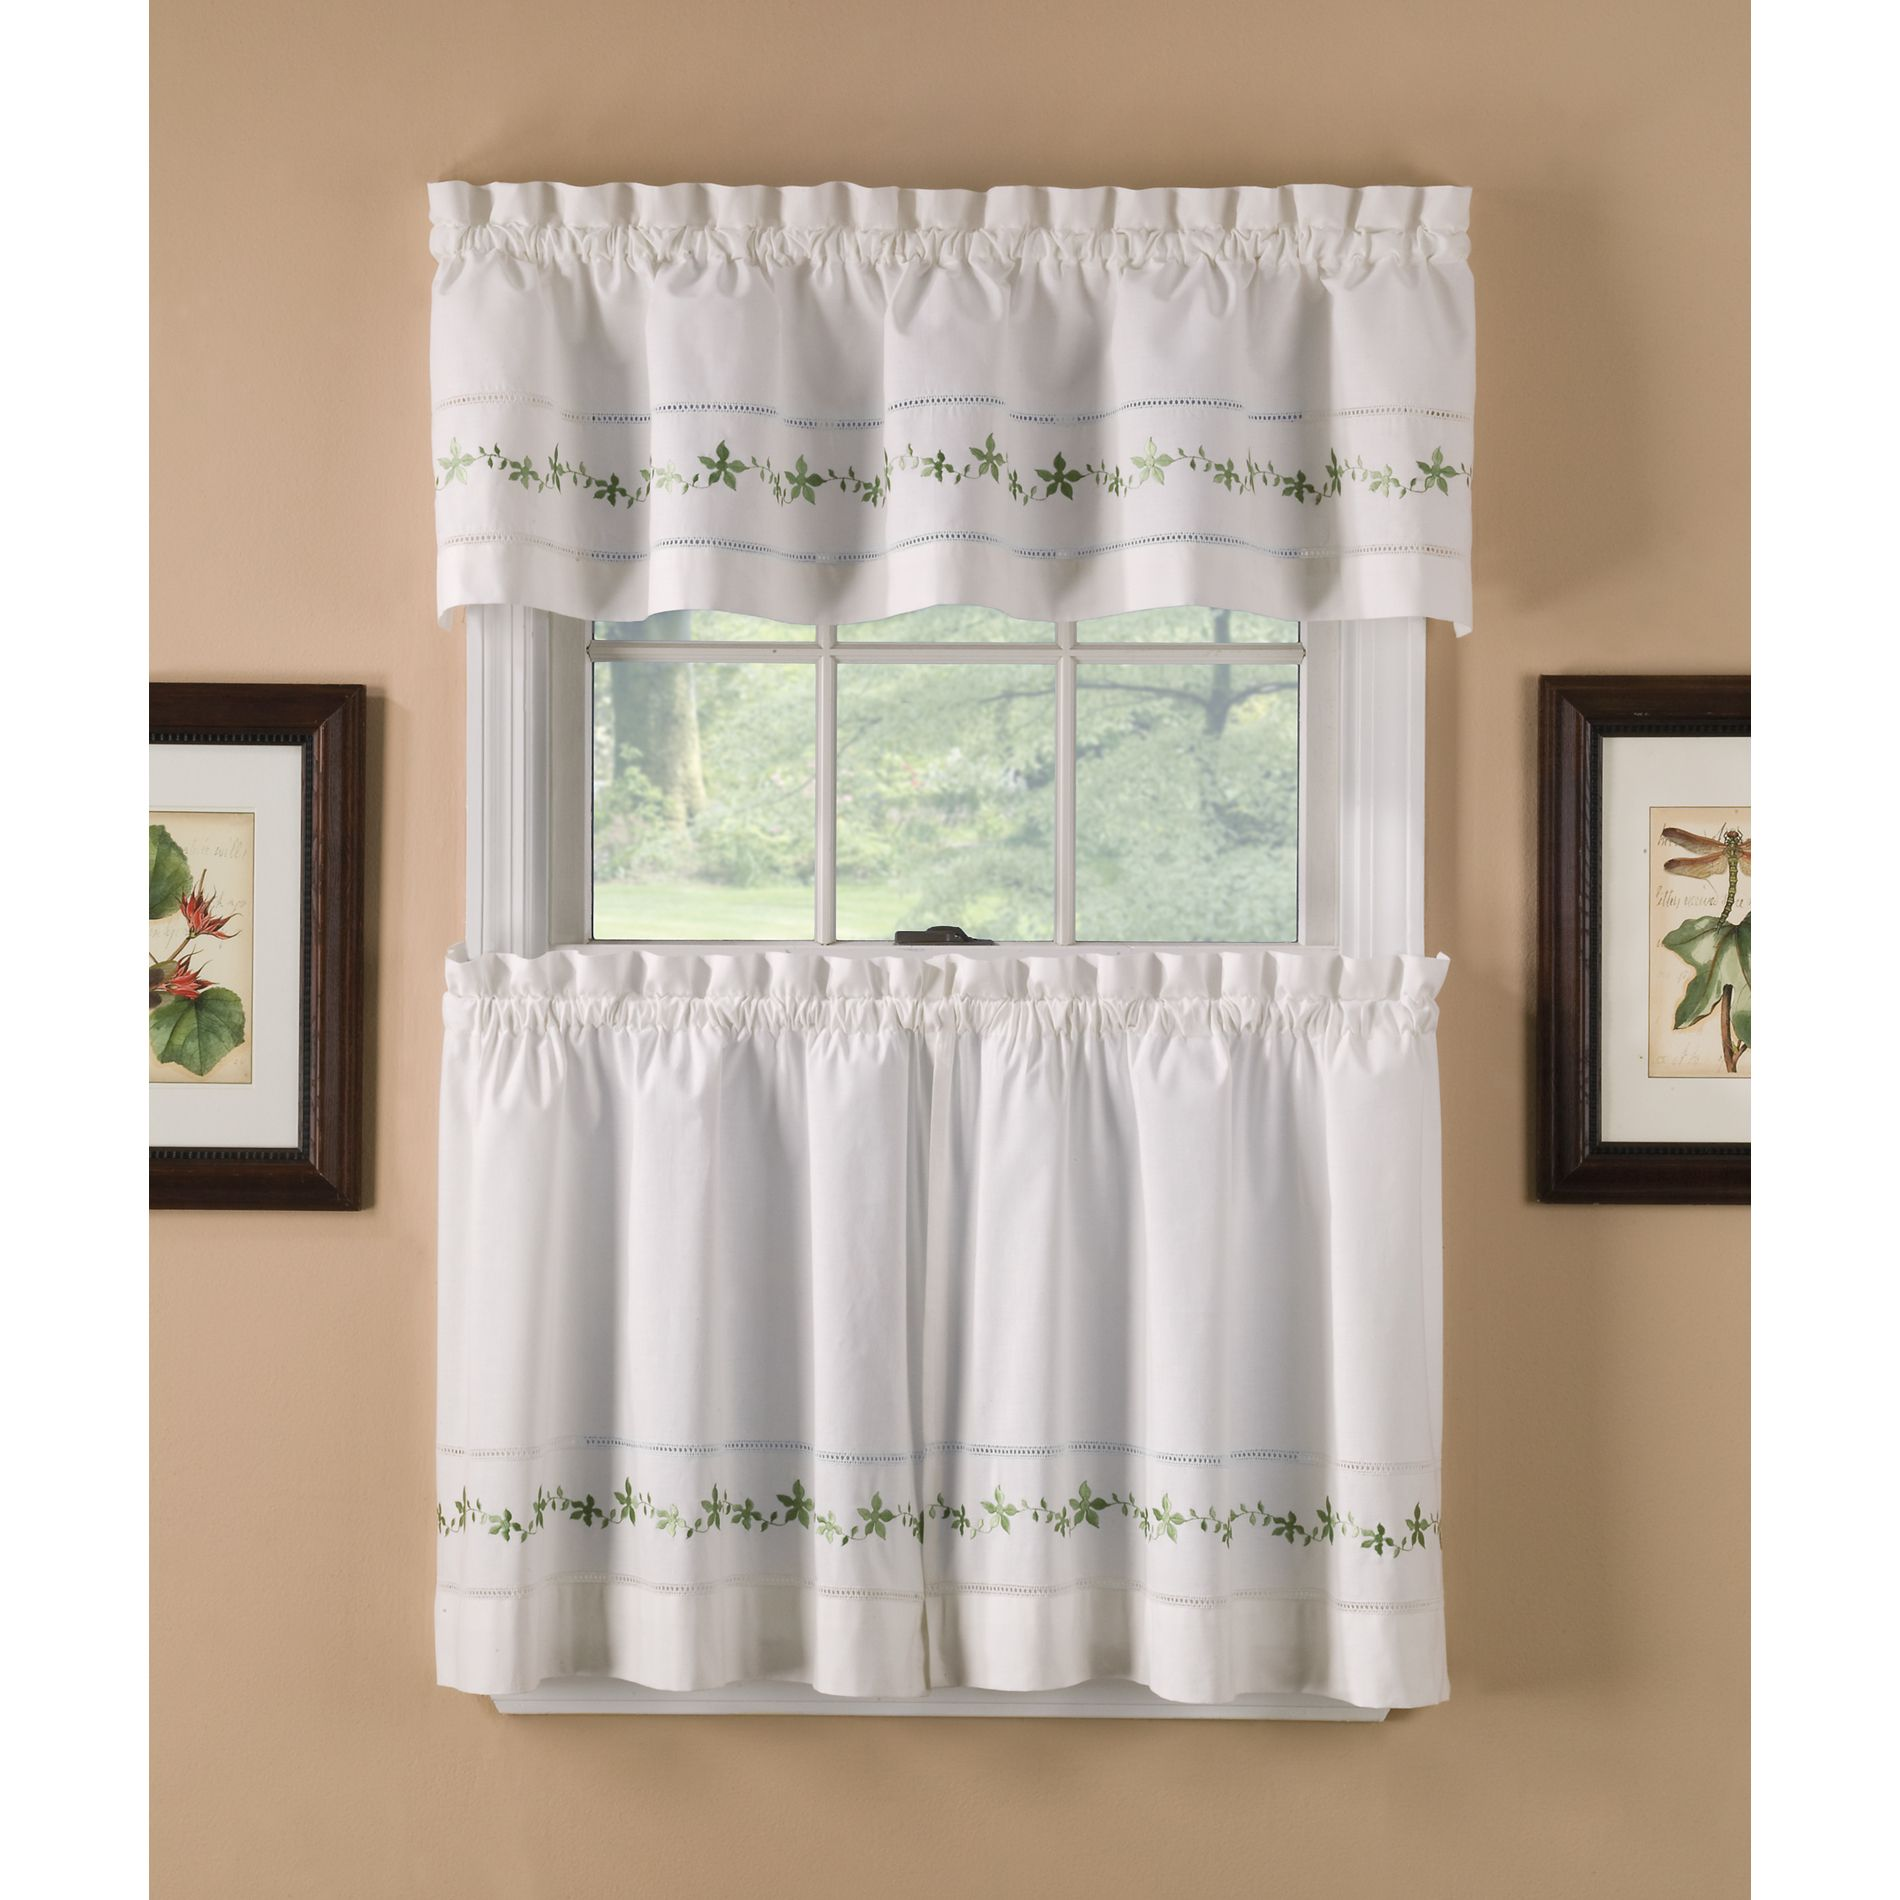 Luxury Interior Home Decorating Ideas with Embroidered Curtains: Embroidered Curtains | Embroidered Silk Curtains | Vintage Drapes For Sale